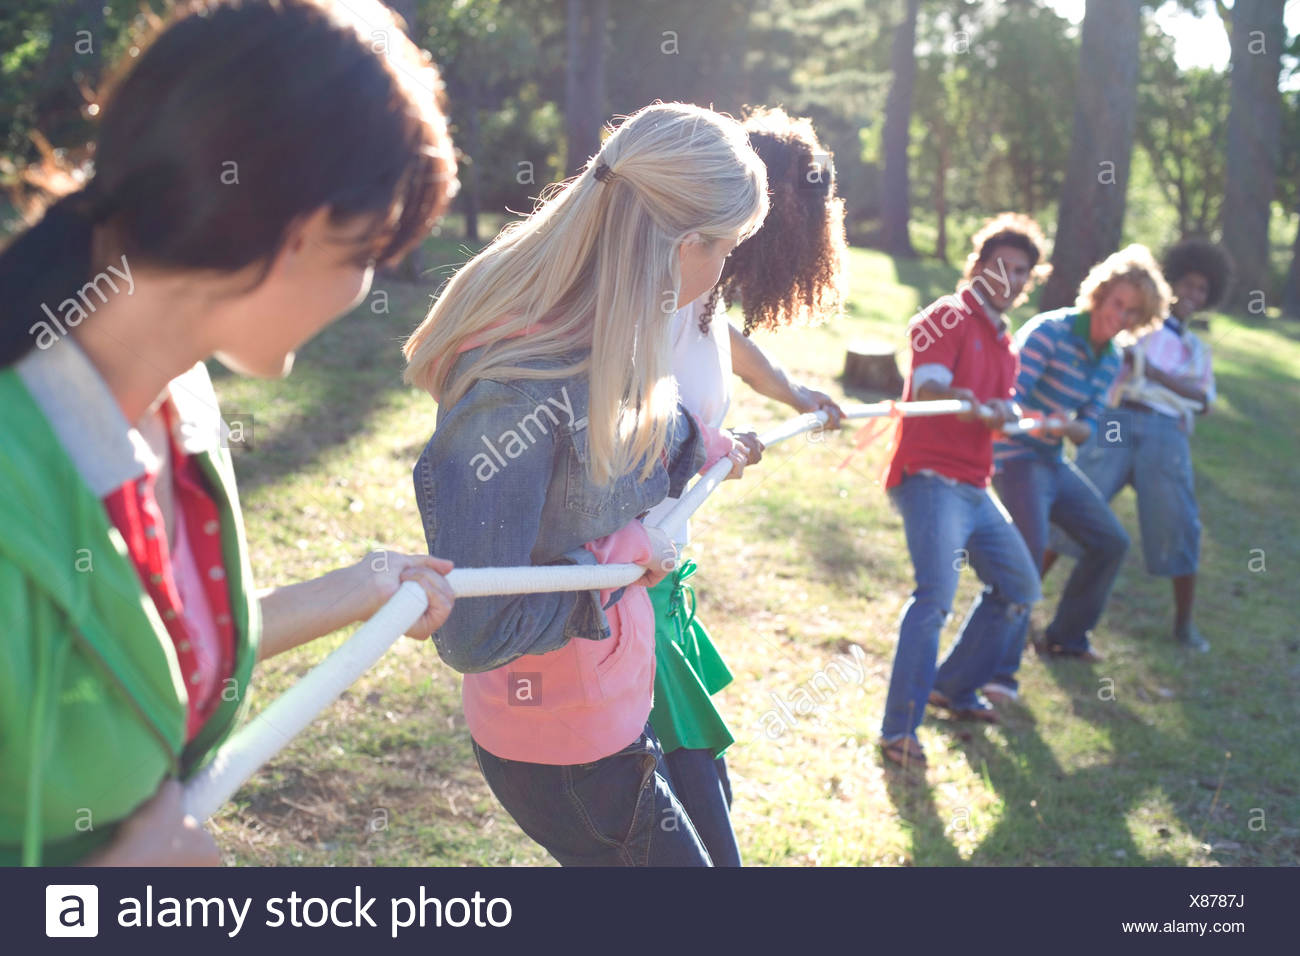 Men verses women vying for control of a rope - Stock Image